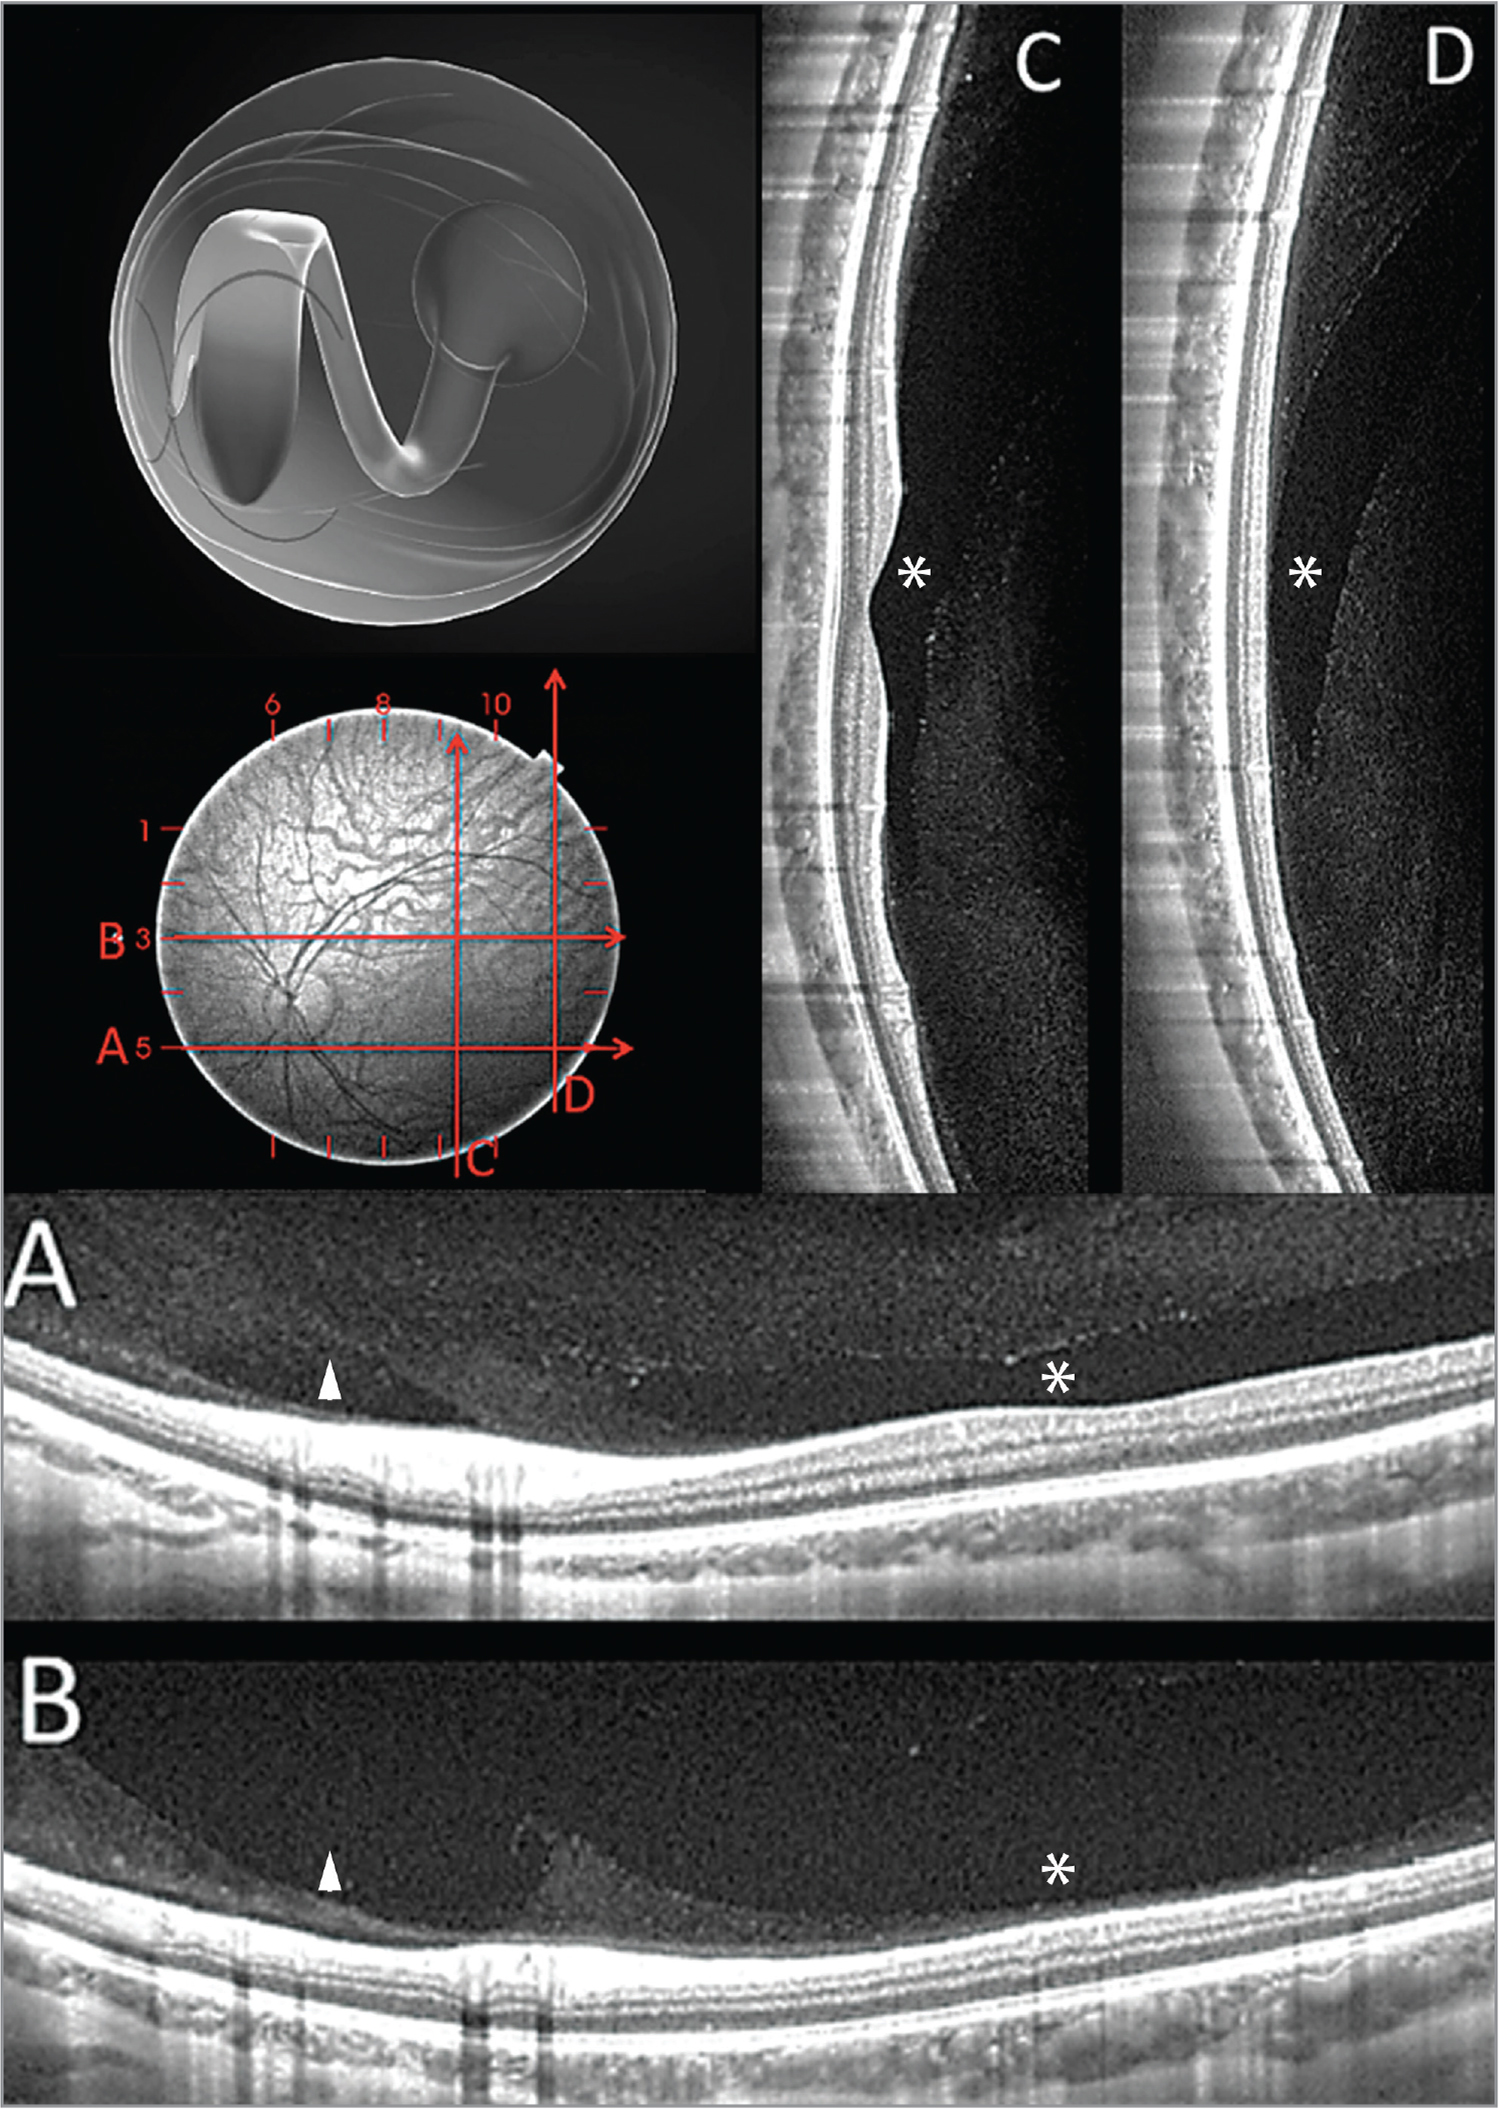 """The top left image depicts schematically how the premacular bursa and prepapillary gap fuse at a variable distance from the optic nerve in the majority of adult eyes and is limited inferiorly but extends superiorly. These spaces can be readily seen on spectral-domain optical coherence tomography (OCT) and swept-source OCT. The horizontal B-scan below the optic nerve (A) shows how the area of Martegiani (the posterior portion of the prepapillary gap overlying the optic nerve head) is separated from the bursa (asterisk) by formed vitreous – the """"septum interpapillomaculare"""" of Worst. The horizontal B-scan above the optic nerve (B) shows that the two spaces have fused, but a ridge persists as a legacy of the septum. The vertical B-scan in through the more central (C) and temporal macula (D) shows that the bursa (asterisk) is confined to the posterior pole inferiorly, but extends beyond the scan range superiorly. Adapted from: Engelbert M. A new understanding of vitreous structure. Review of Ophthalmology. 2016;01:60–64."""